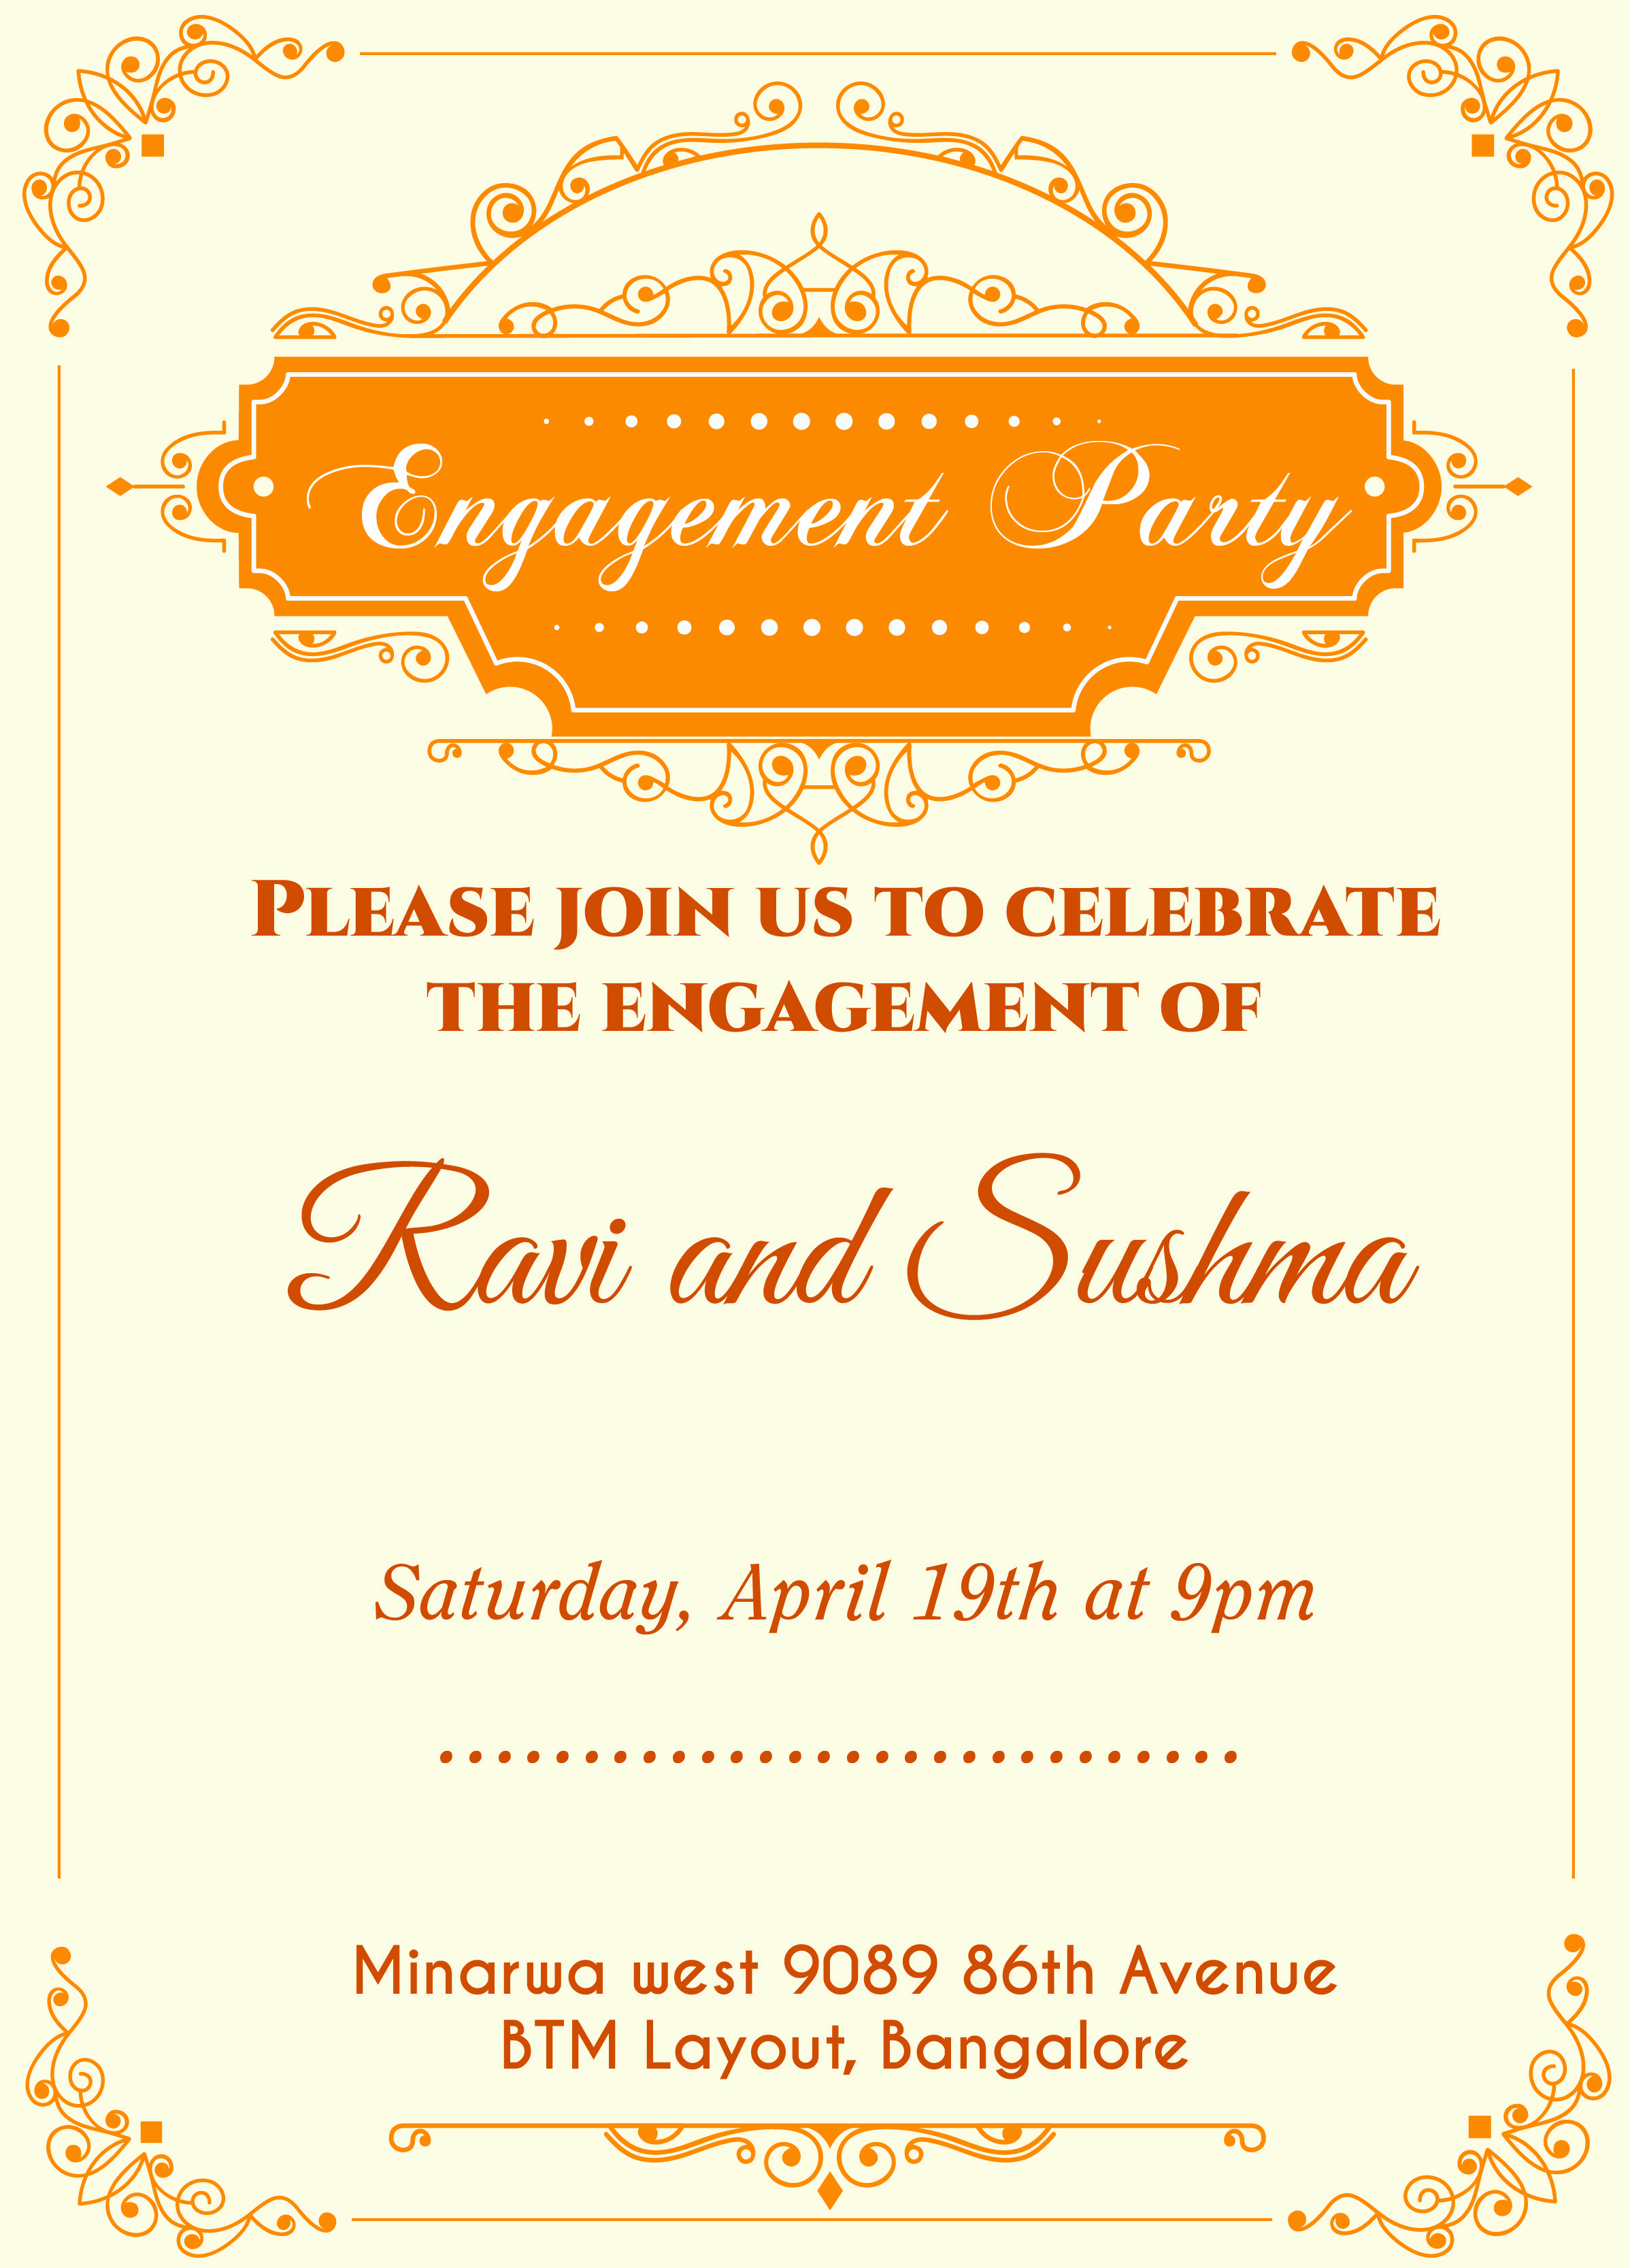 Engagment Party Invitation Wording Lovely Indian Engagement Invitation Card with Wordings Check It